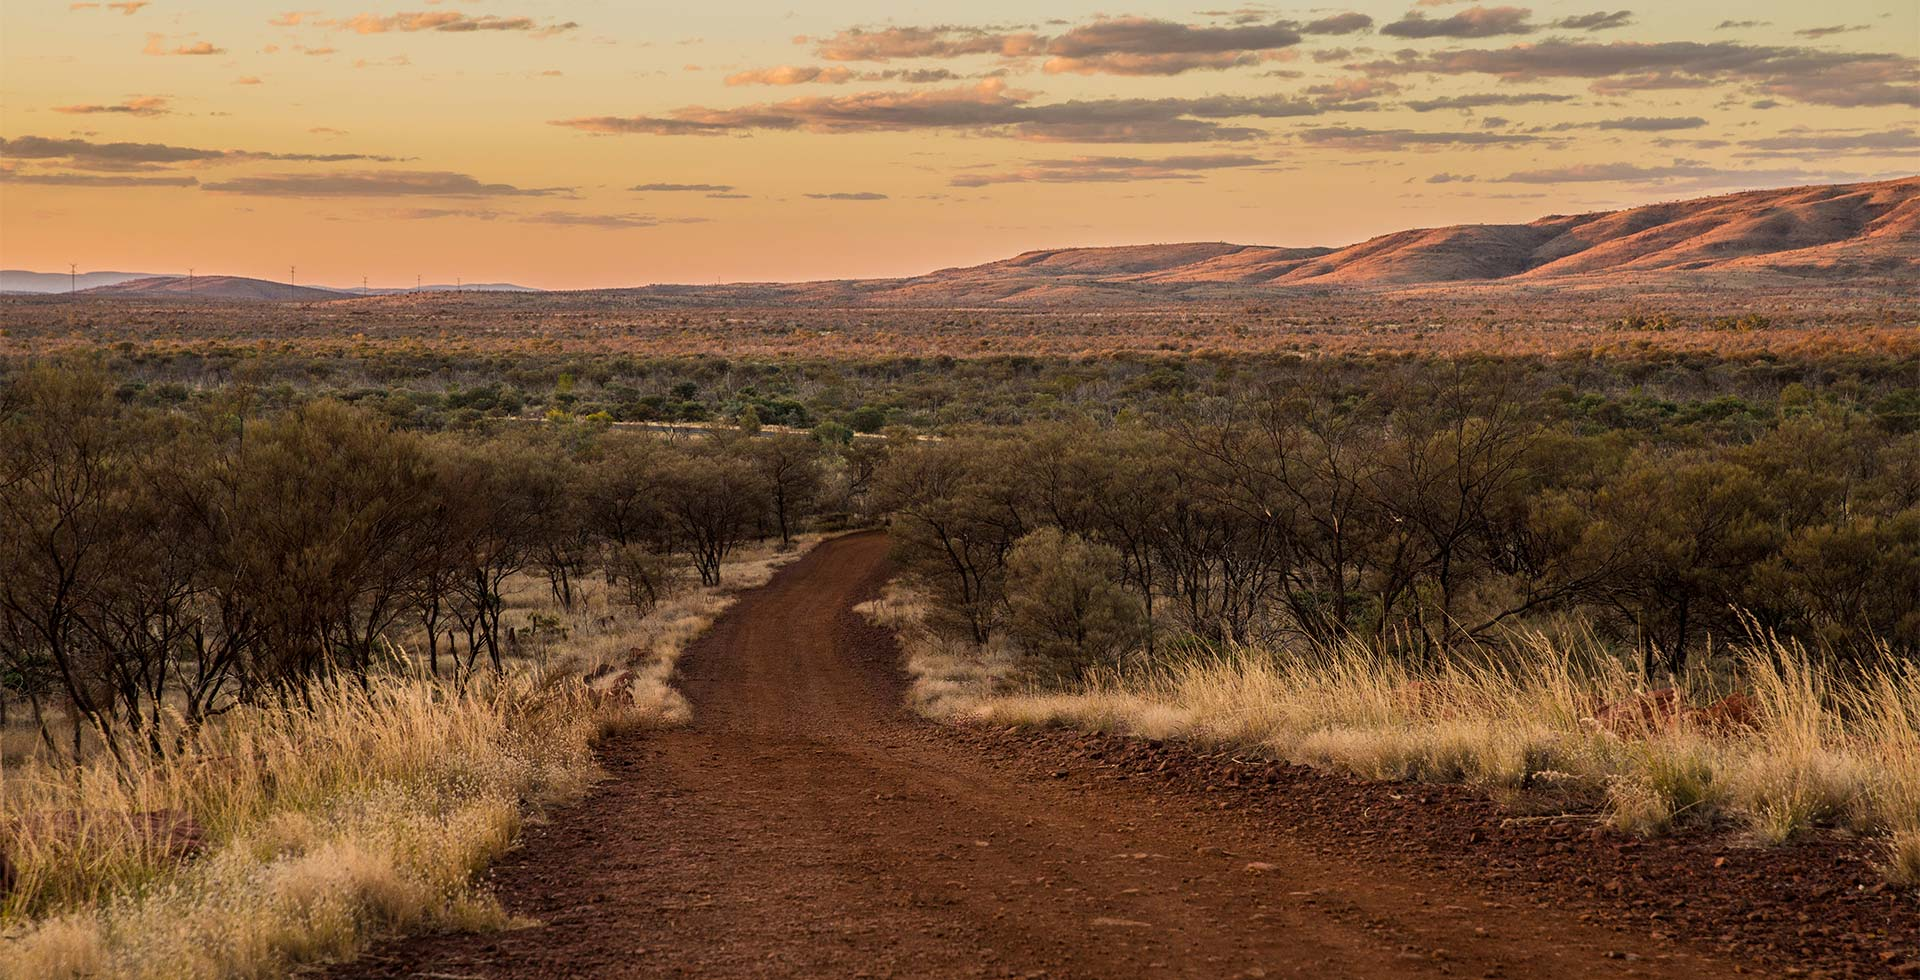 Induldge in endless views of the WA outback in Newman